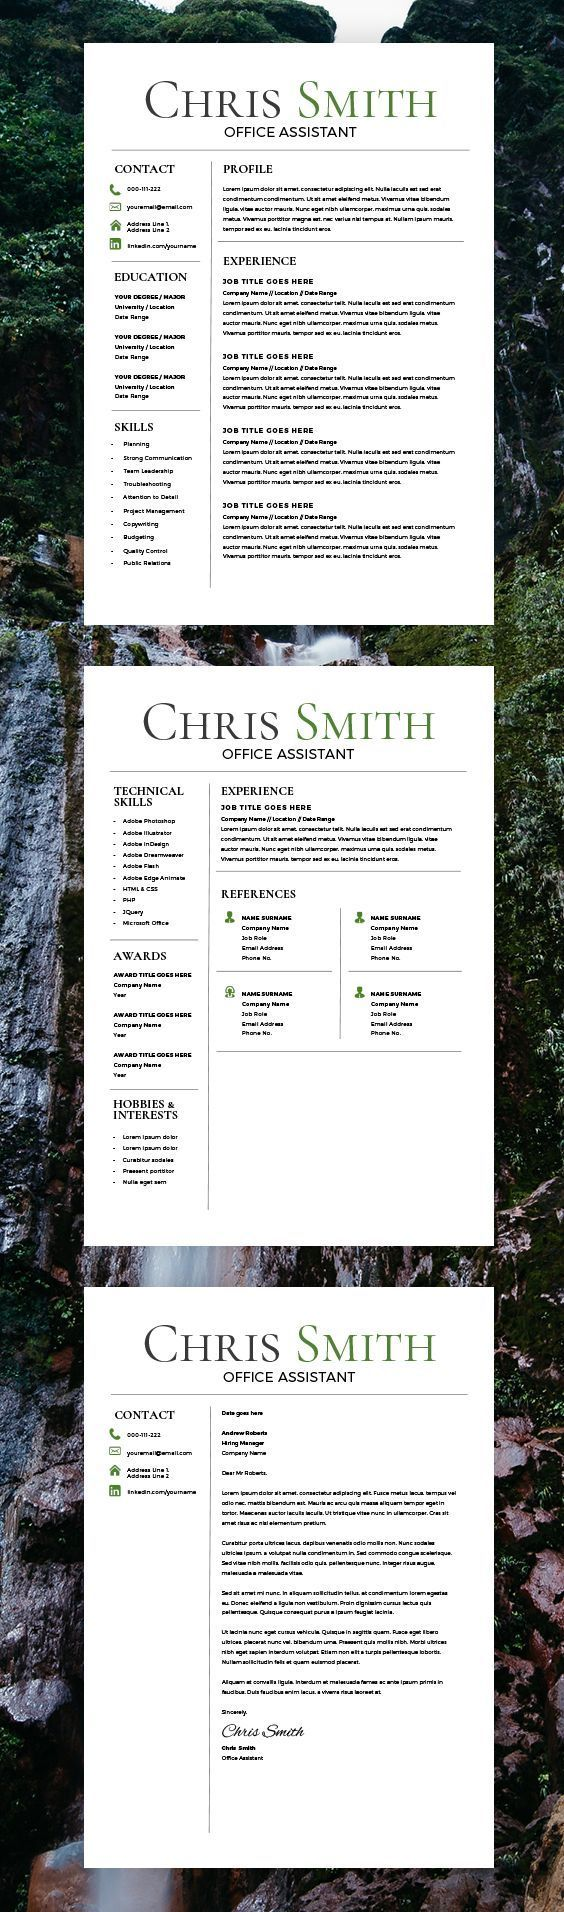 Resume Template Word Mac Entrancing Resume For Marketing Resume For Sales  Resume For Word Macpc  .